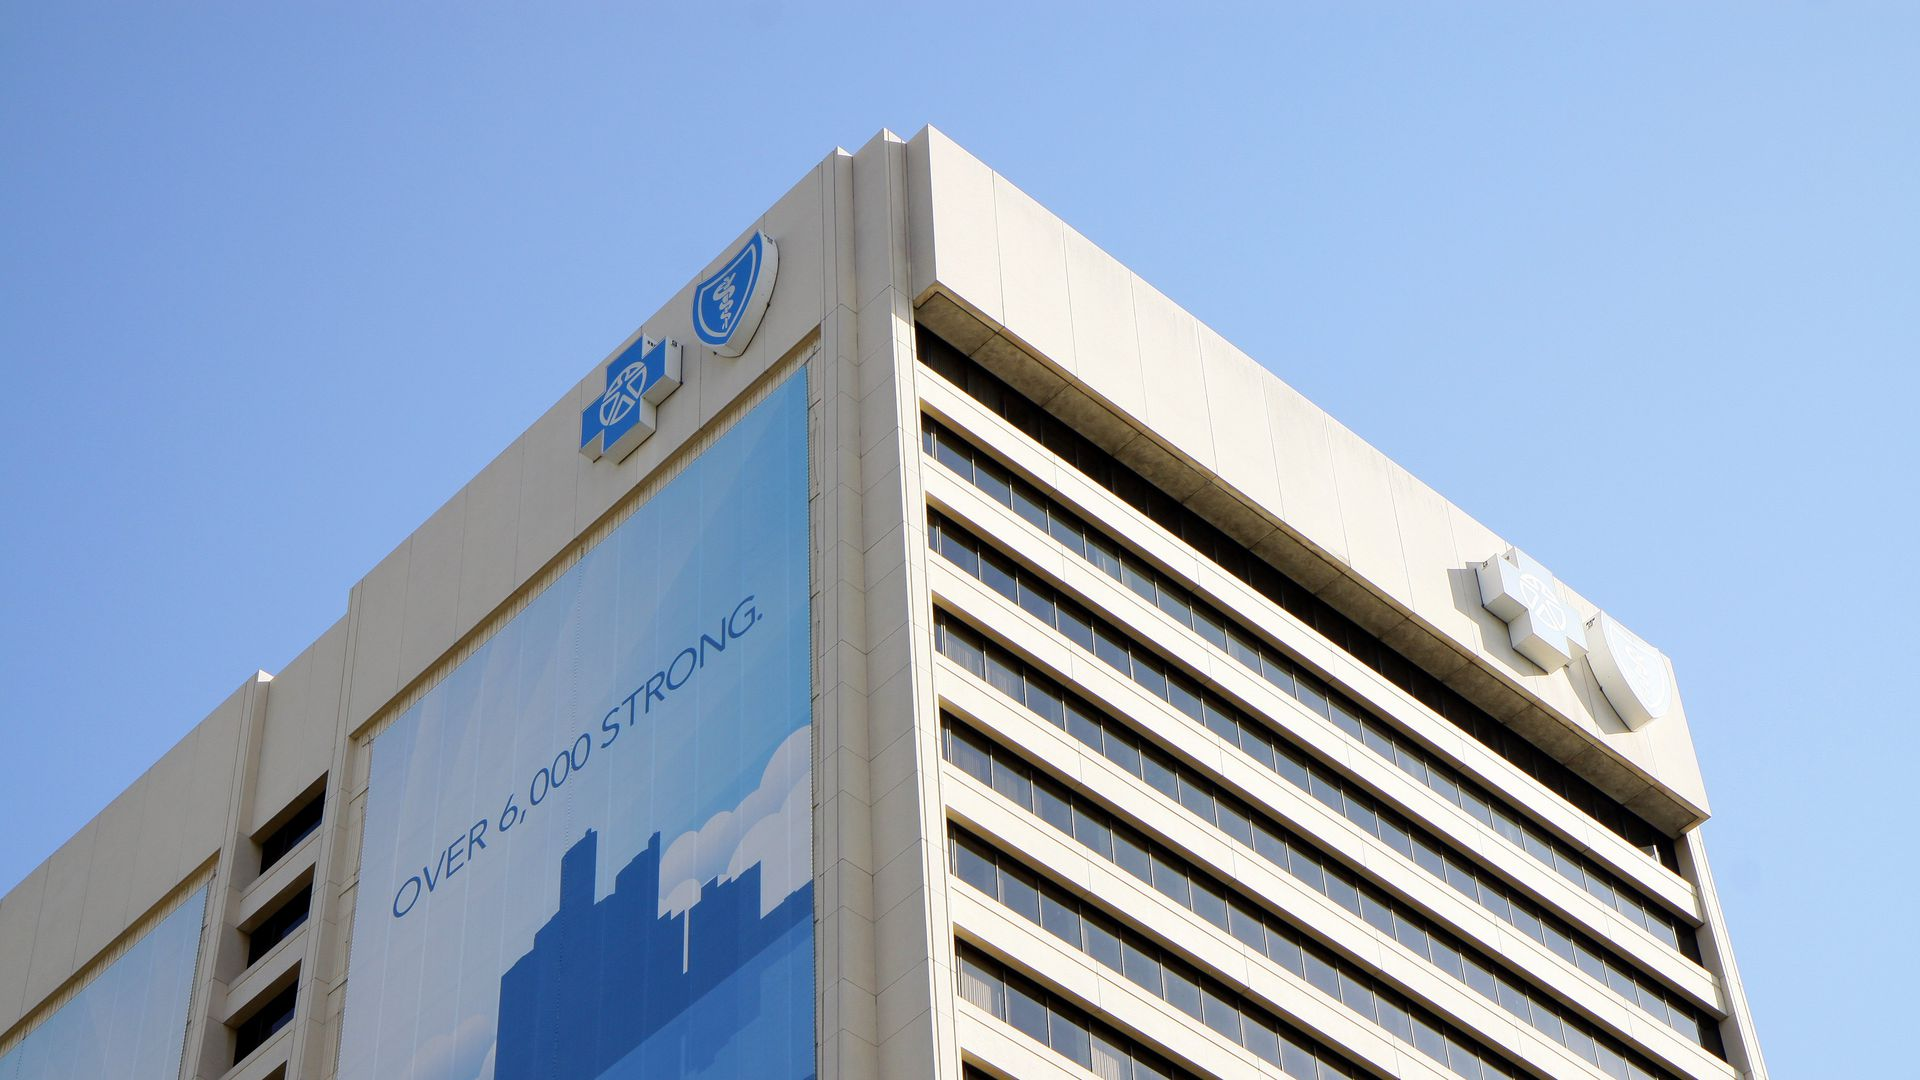 Blue Cross Blue Shield building and logo